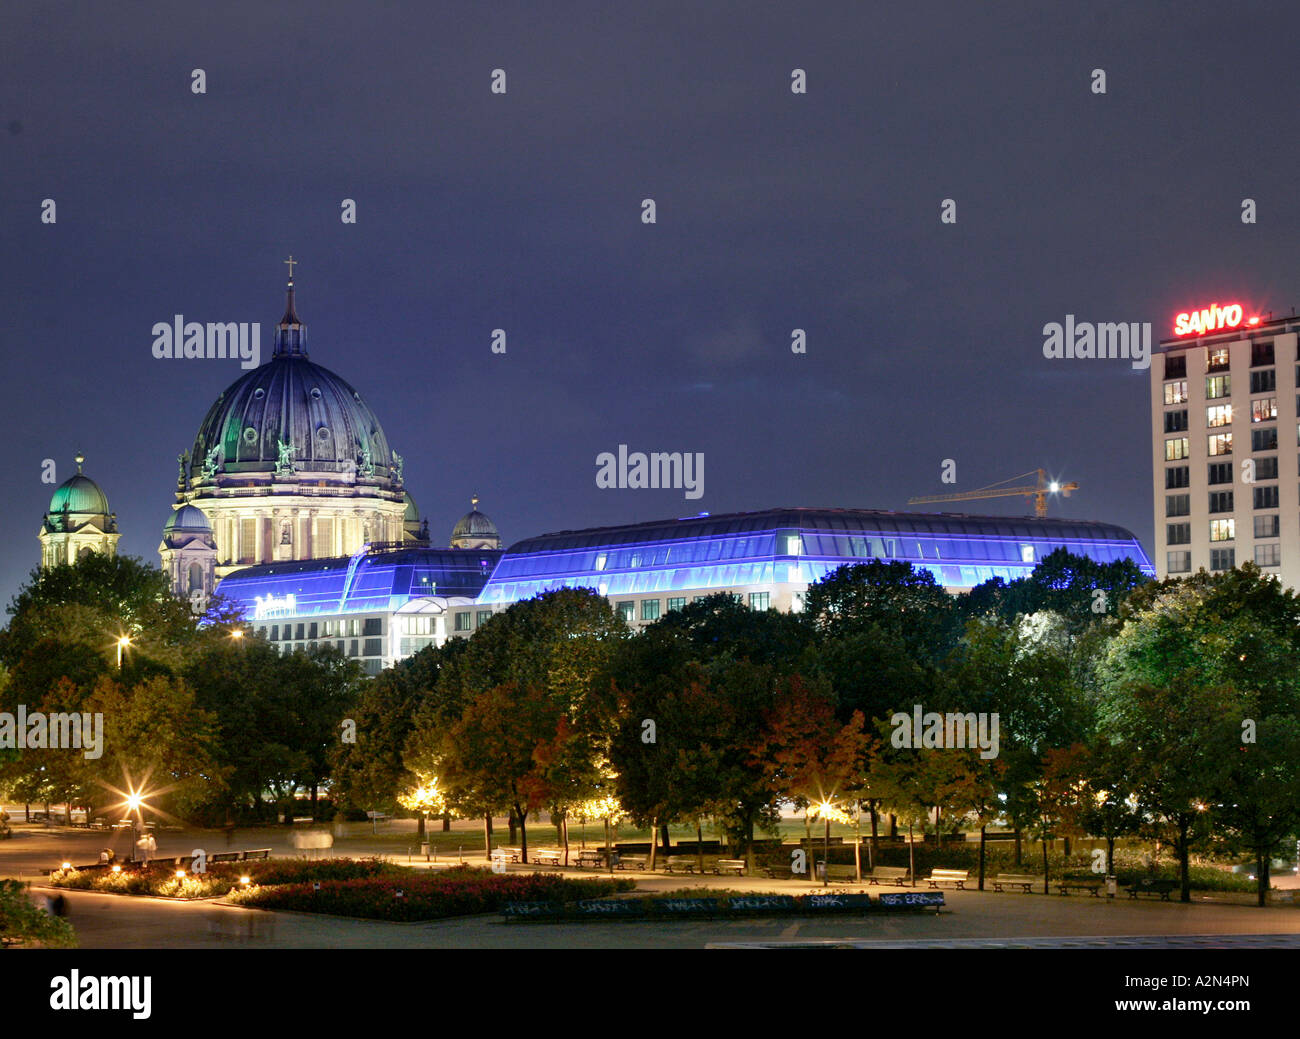 Hotel with cathedral illuminated at night, Berlin Cathedral, Radisson Blu, Berlin, Germany - Stock Image